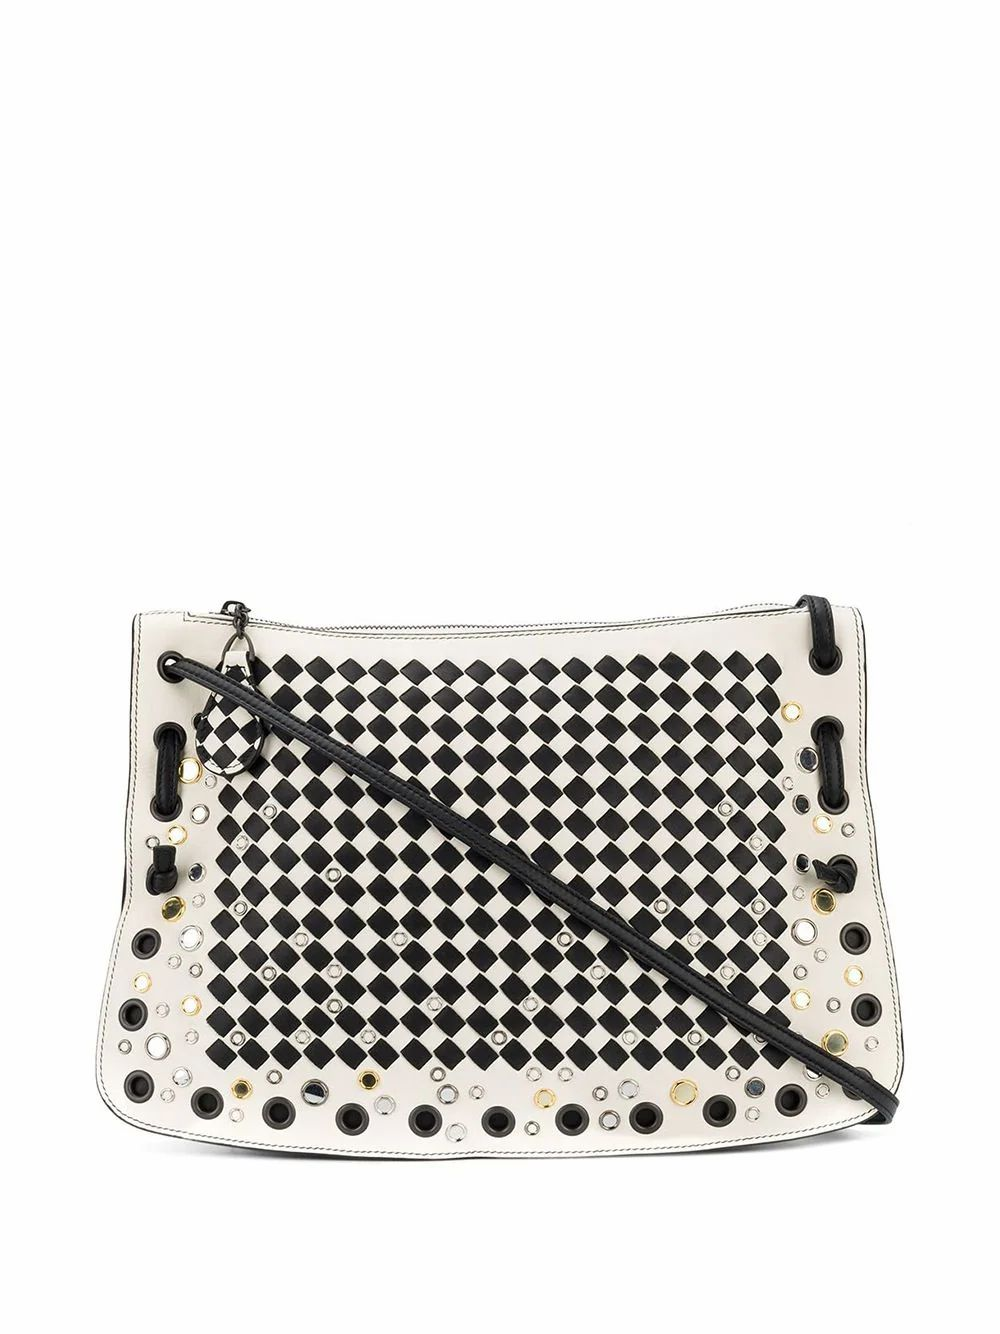 Bottega Veneta BOTTEGA VENETA WOMEN'S WHITE LEATHER SHOULDER BAG